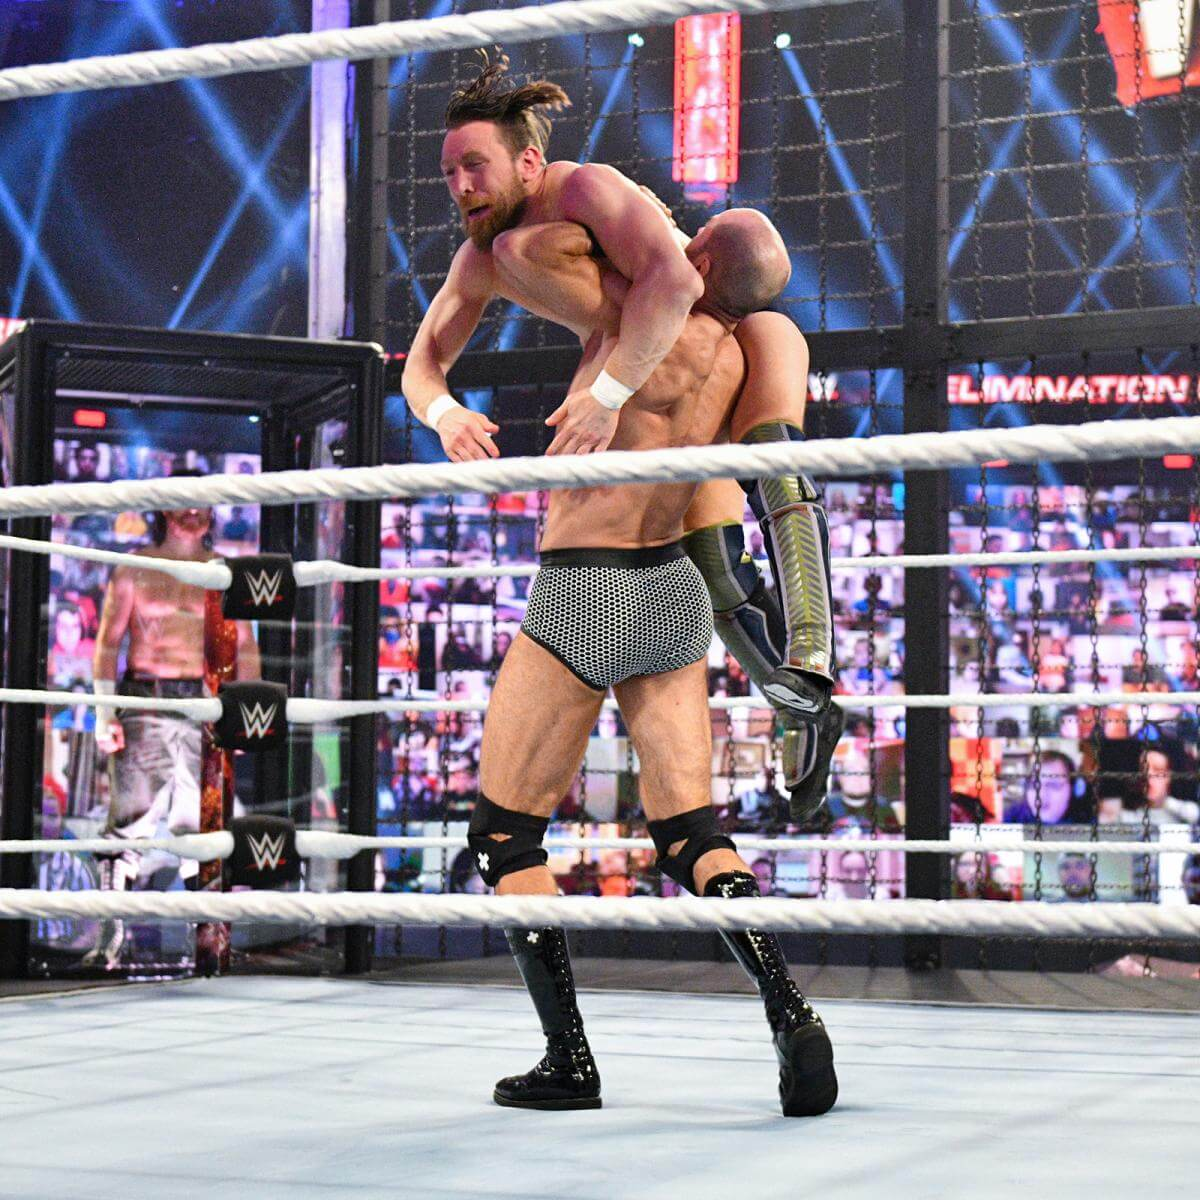 Daniel Bryan and Cesaro kicked-off the SmackDown Elimination Chamber match